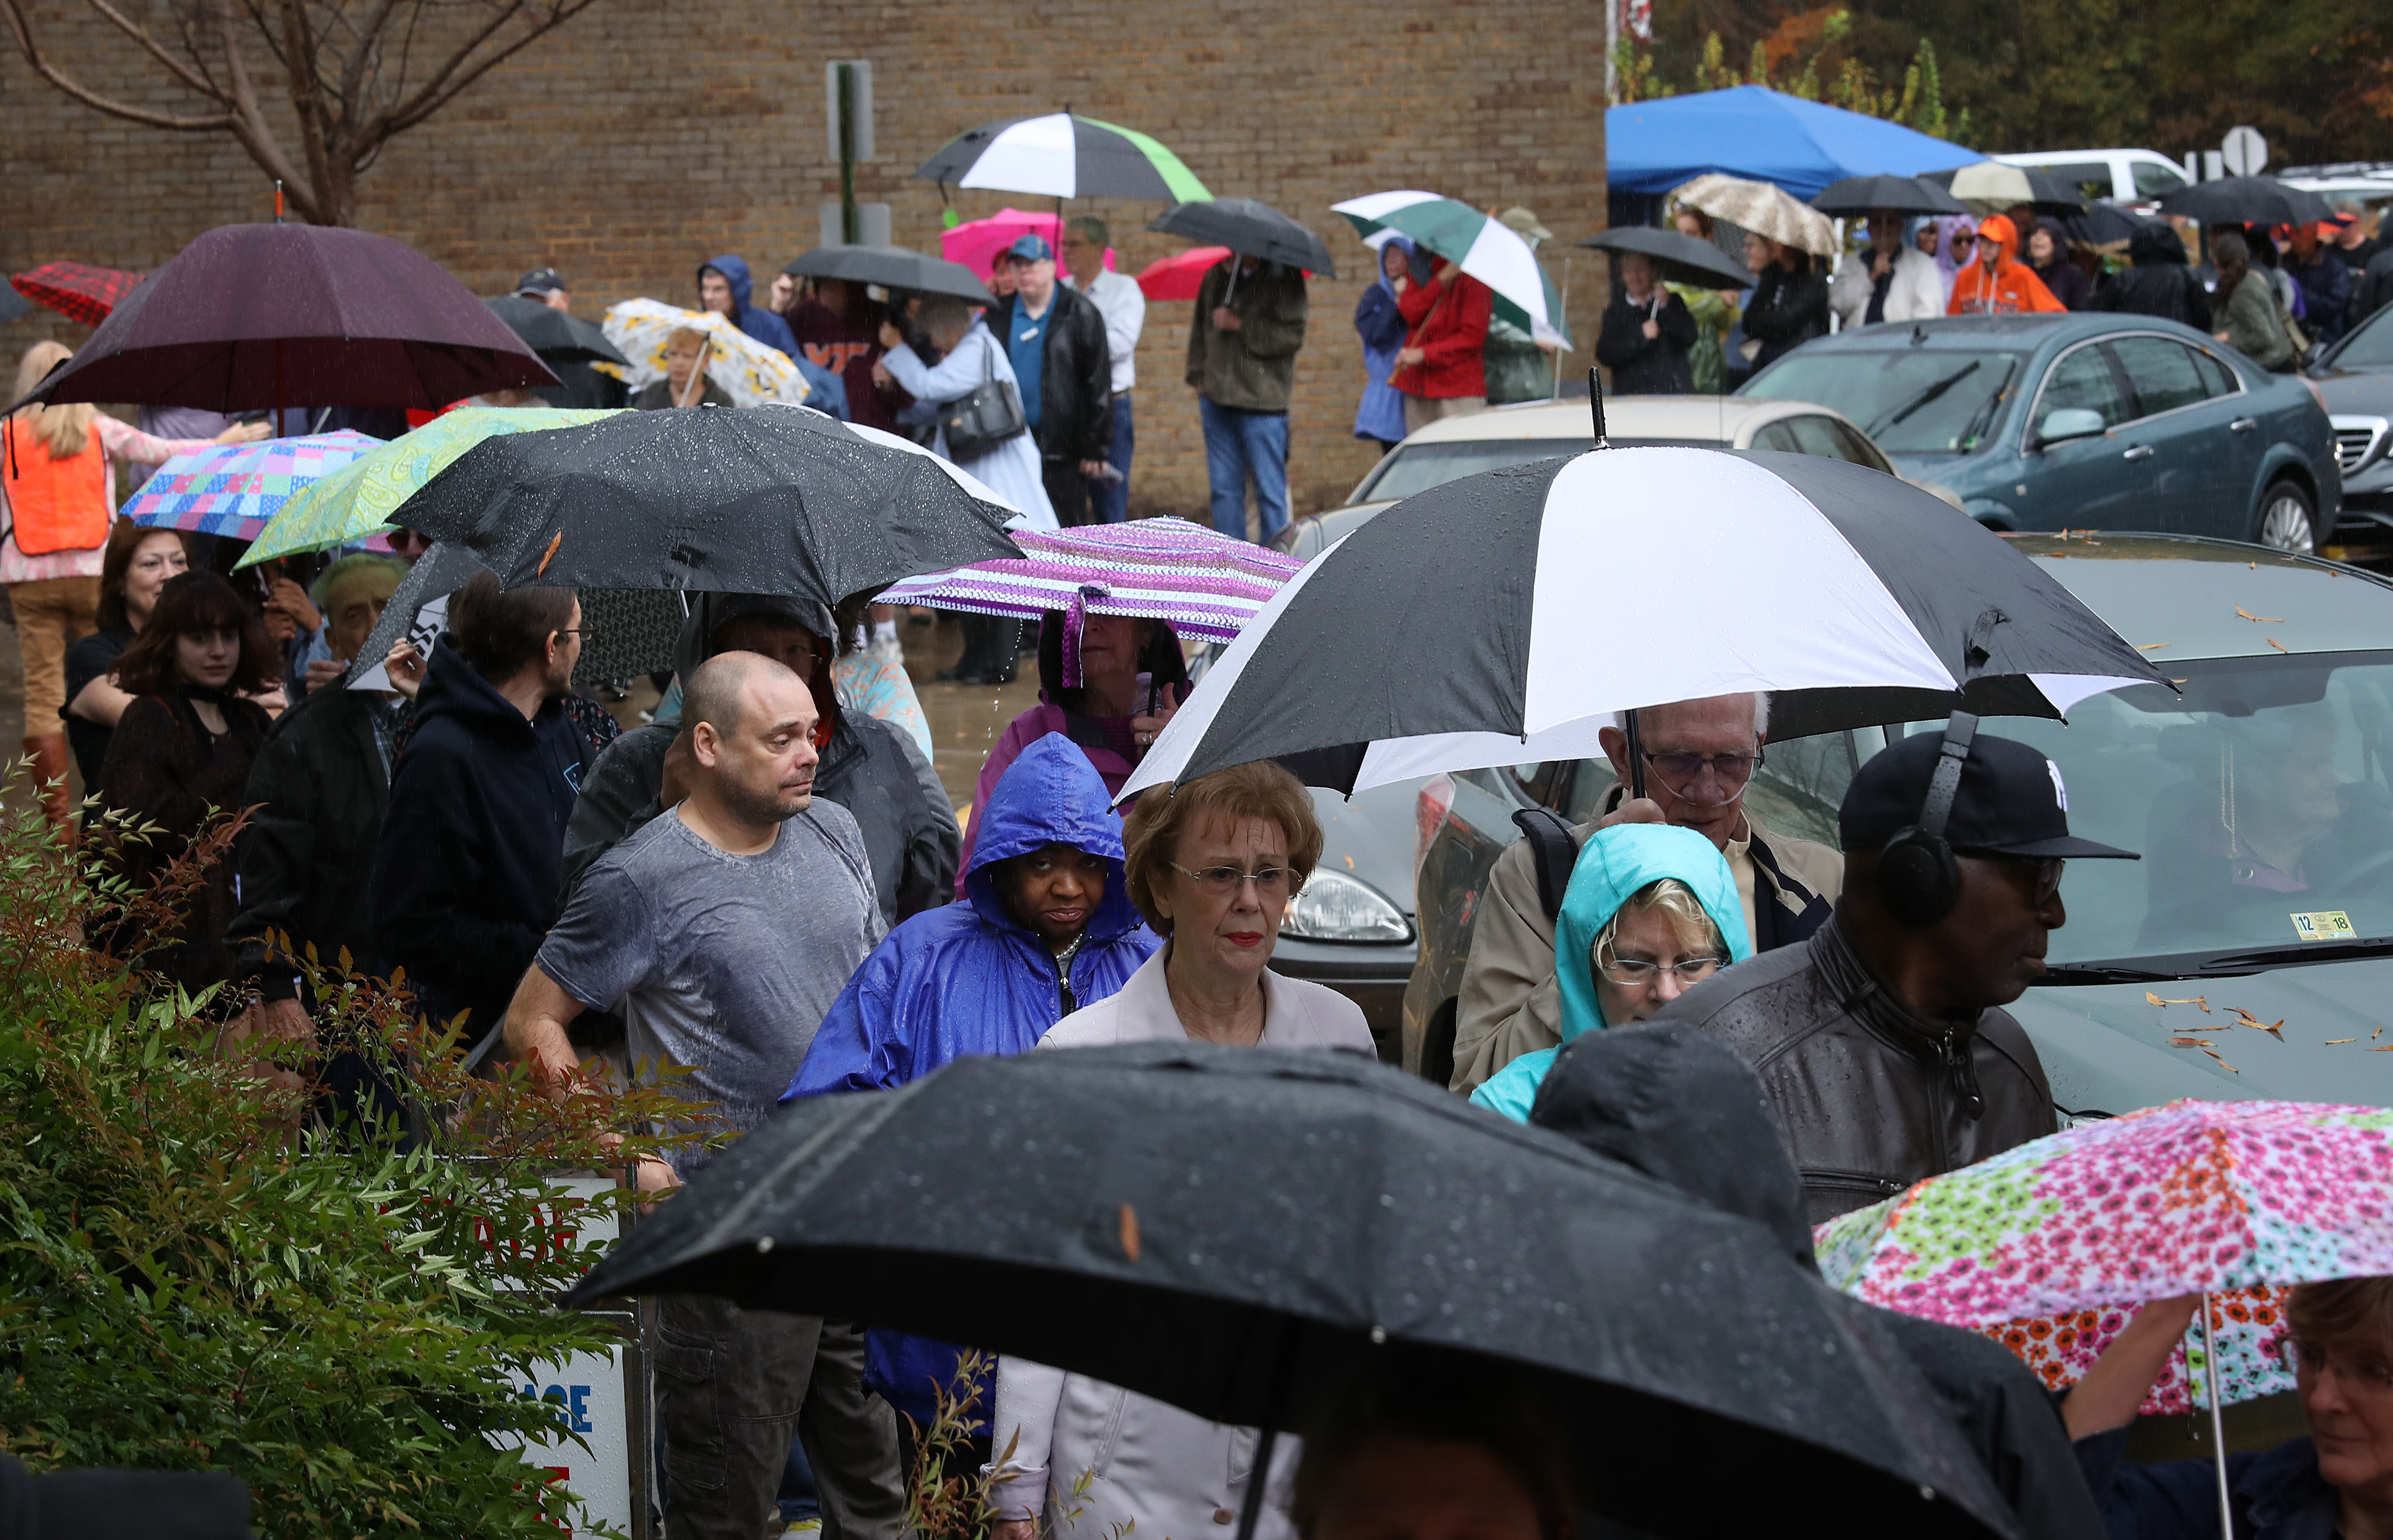 People stand in the rain holding umbrellas.